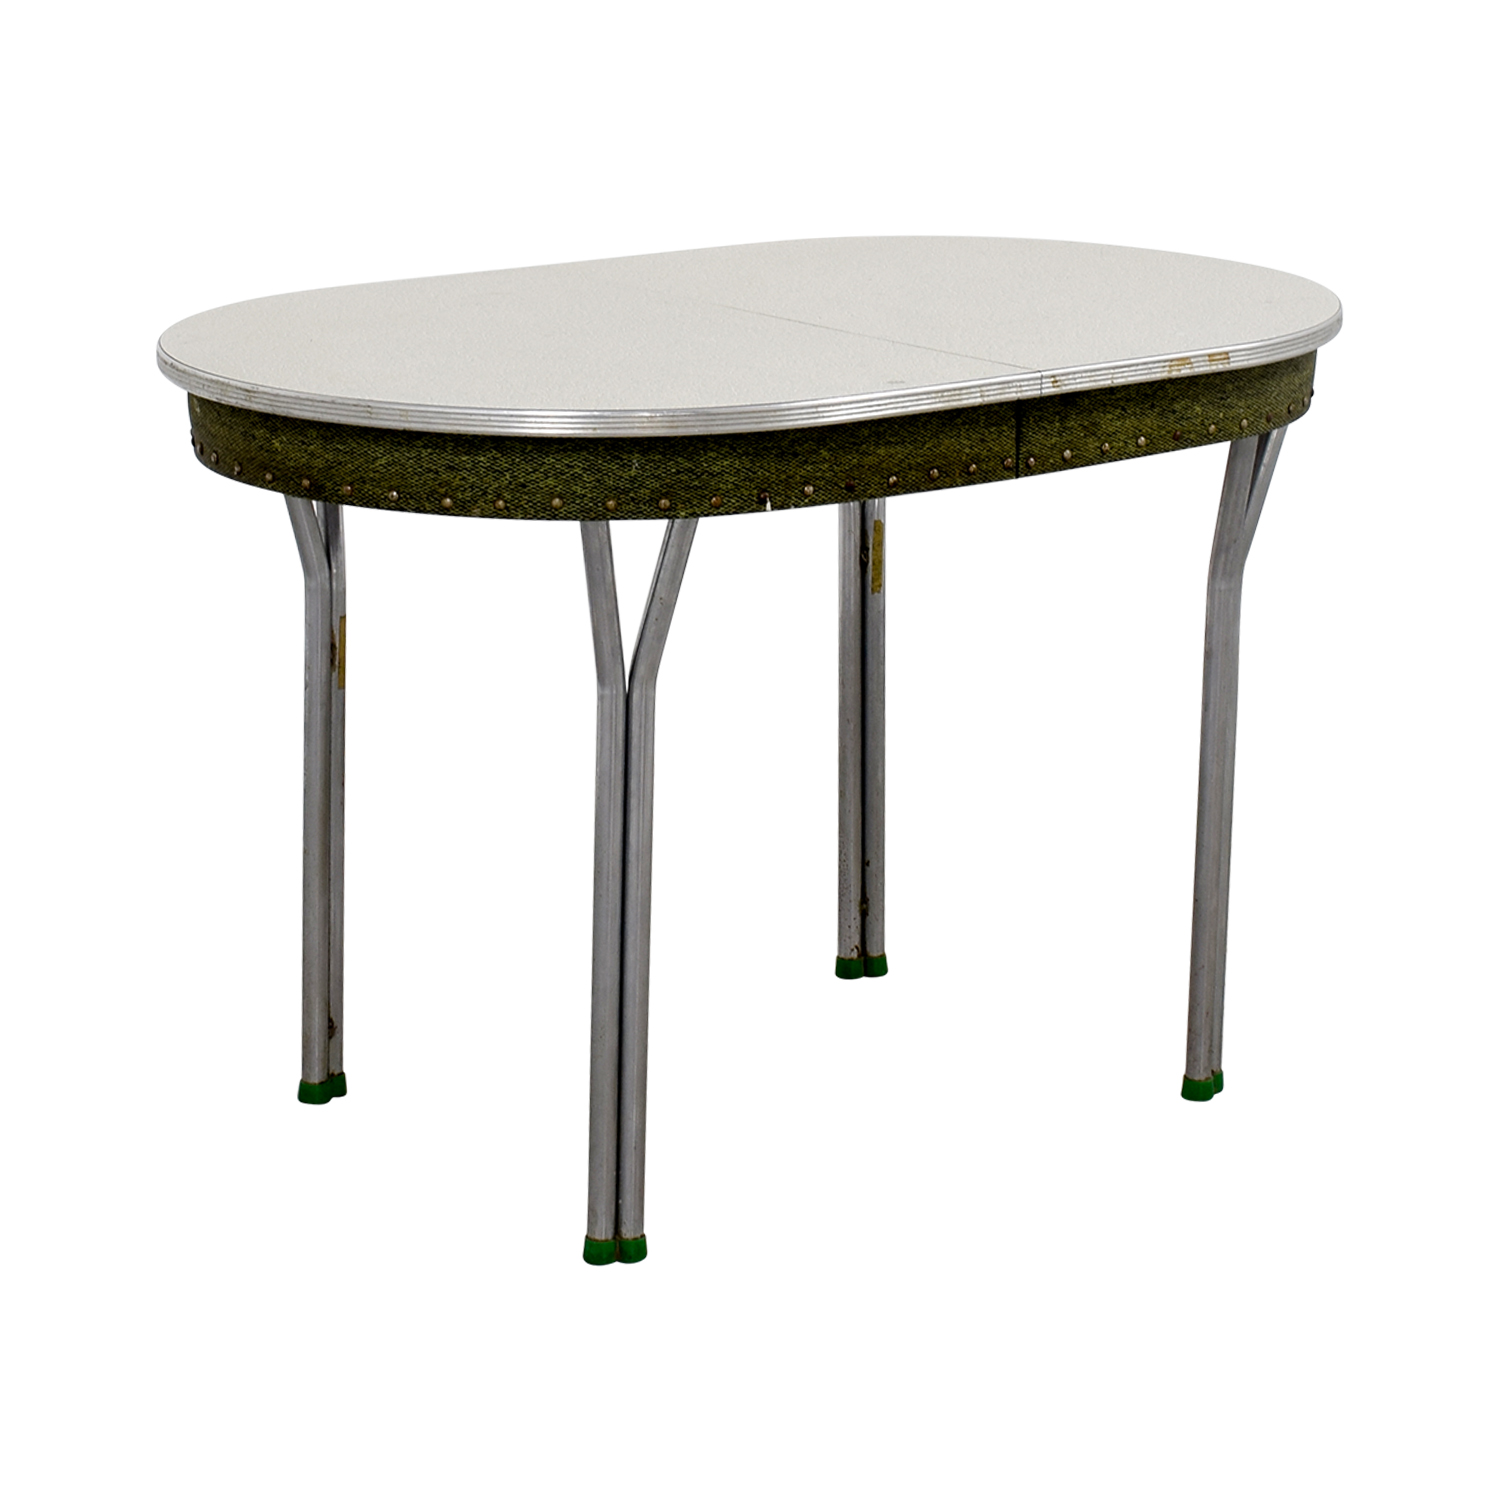 Vintage 1950s Green Formica Table with Inserts used